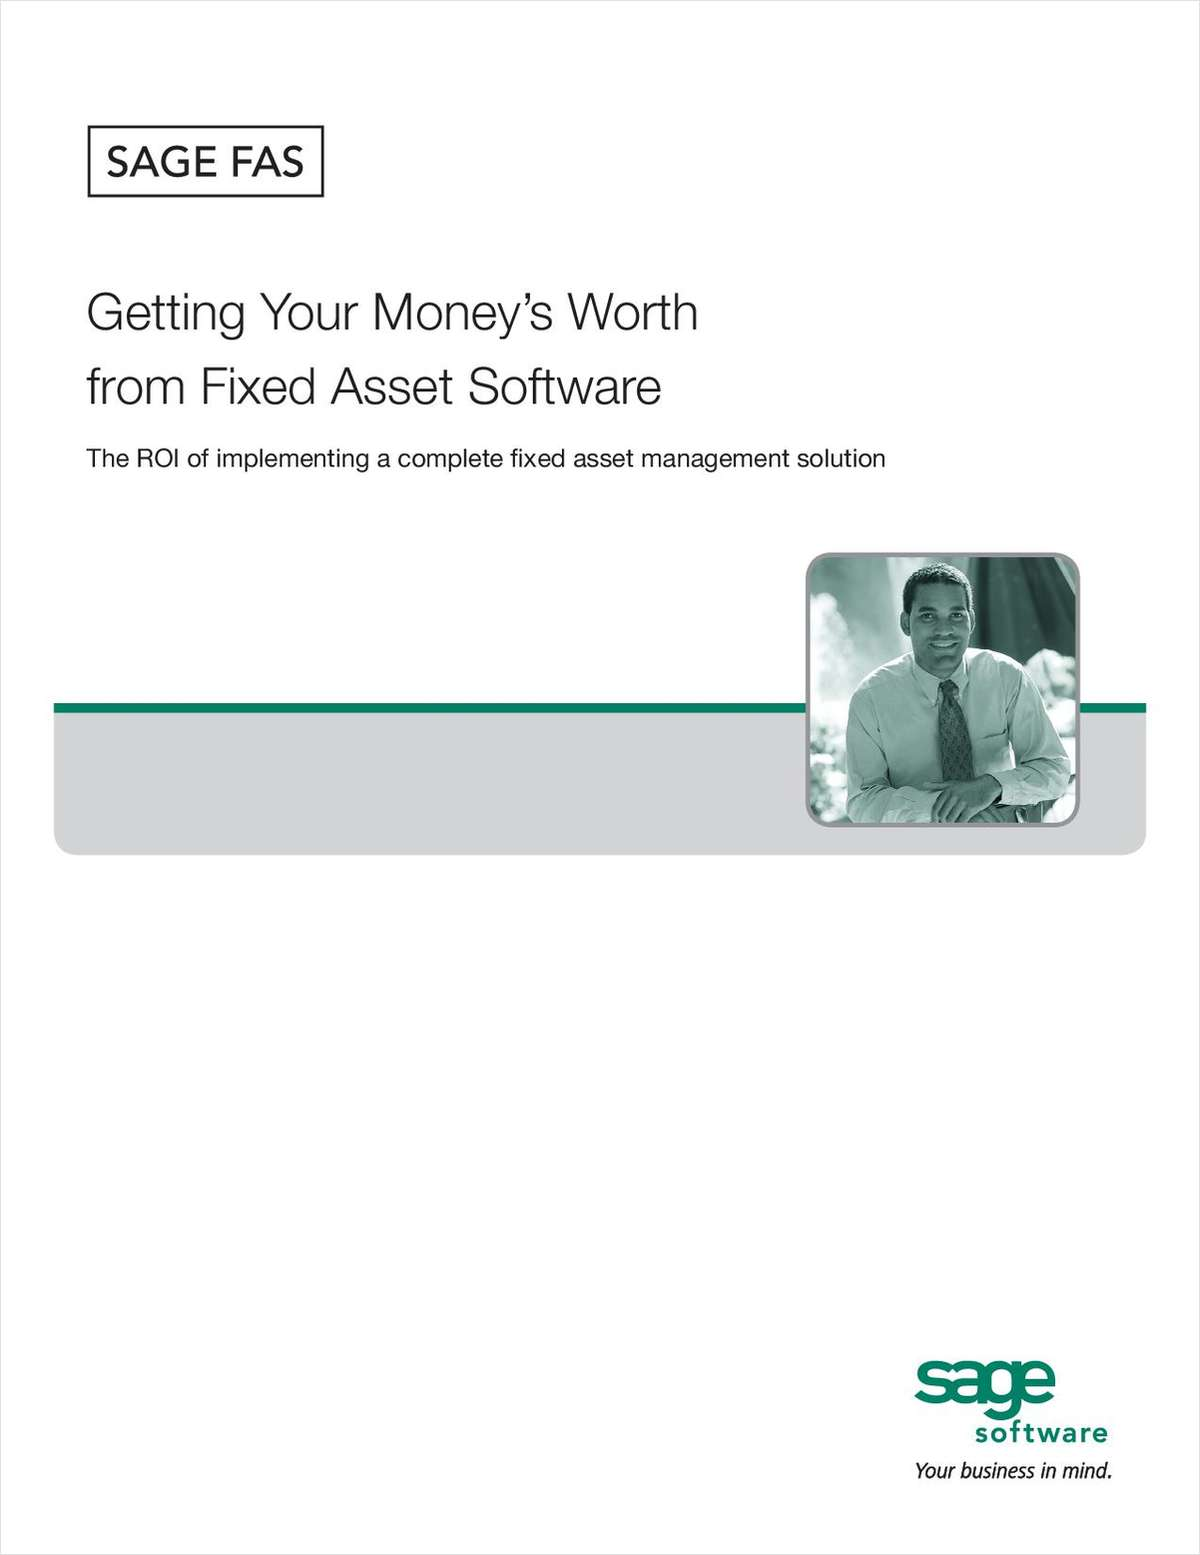 Getting Your Money's Worth from Fixed Asset Software